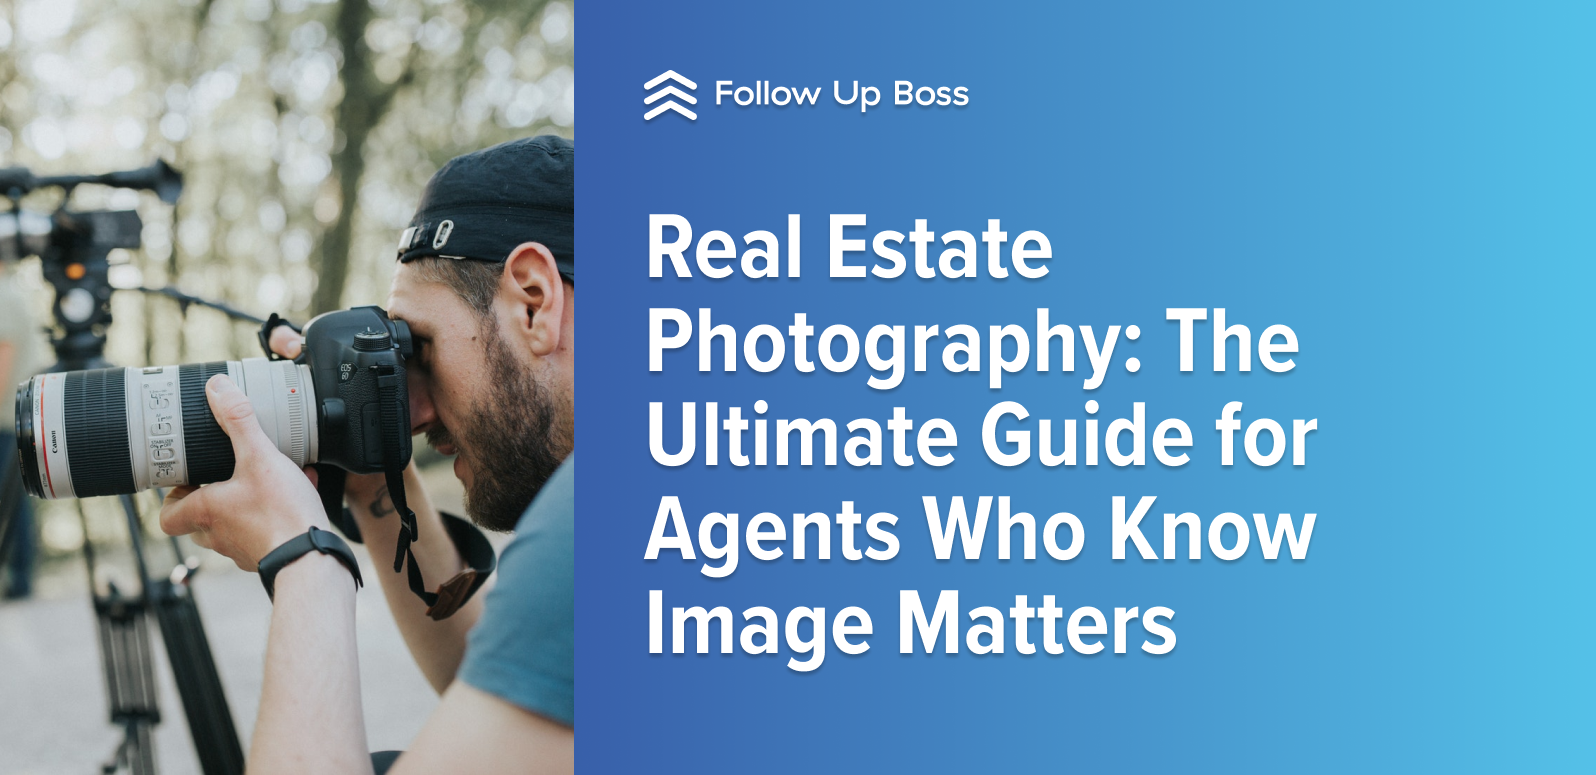 Real Estate Photography: The Ultimate Guide for Agents Who Know Image Matters